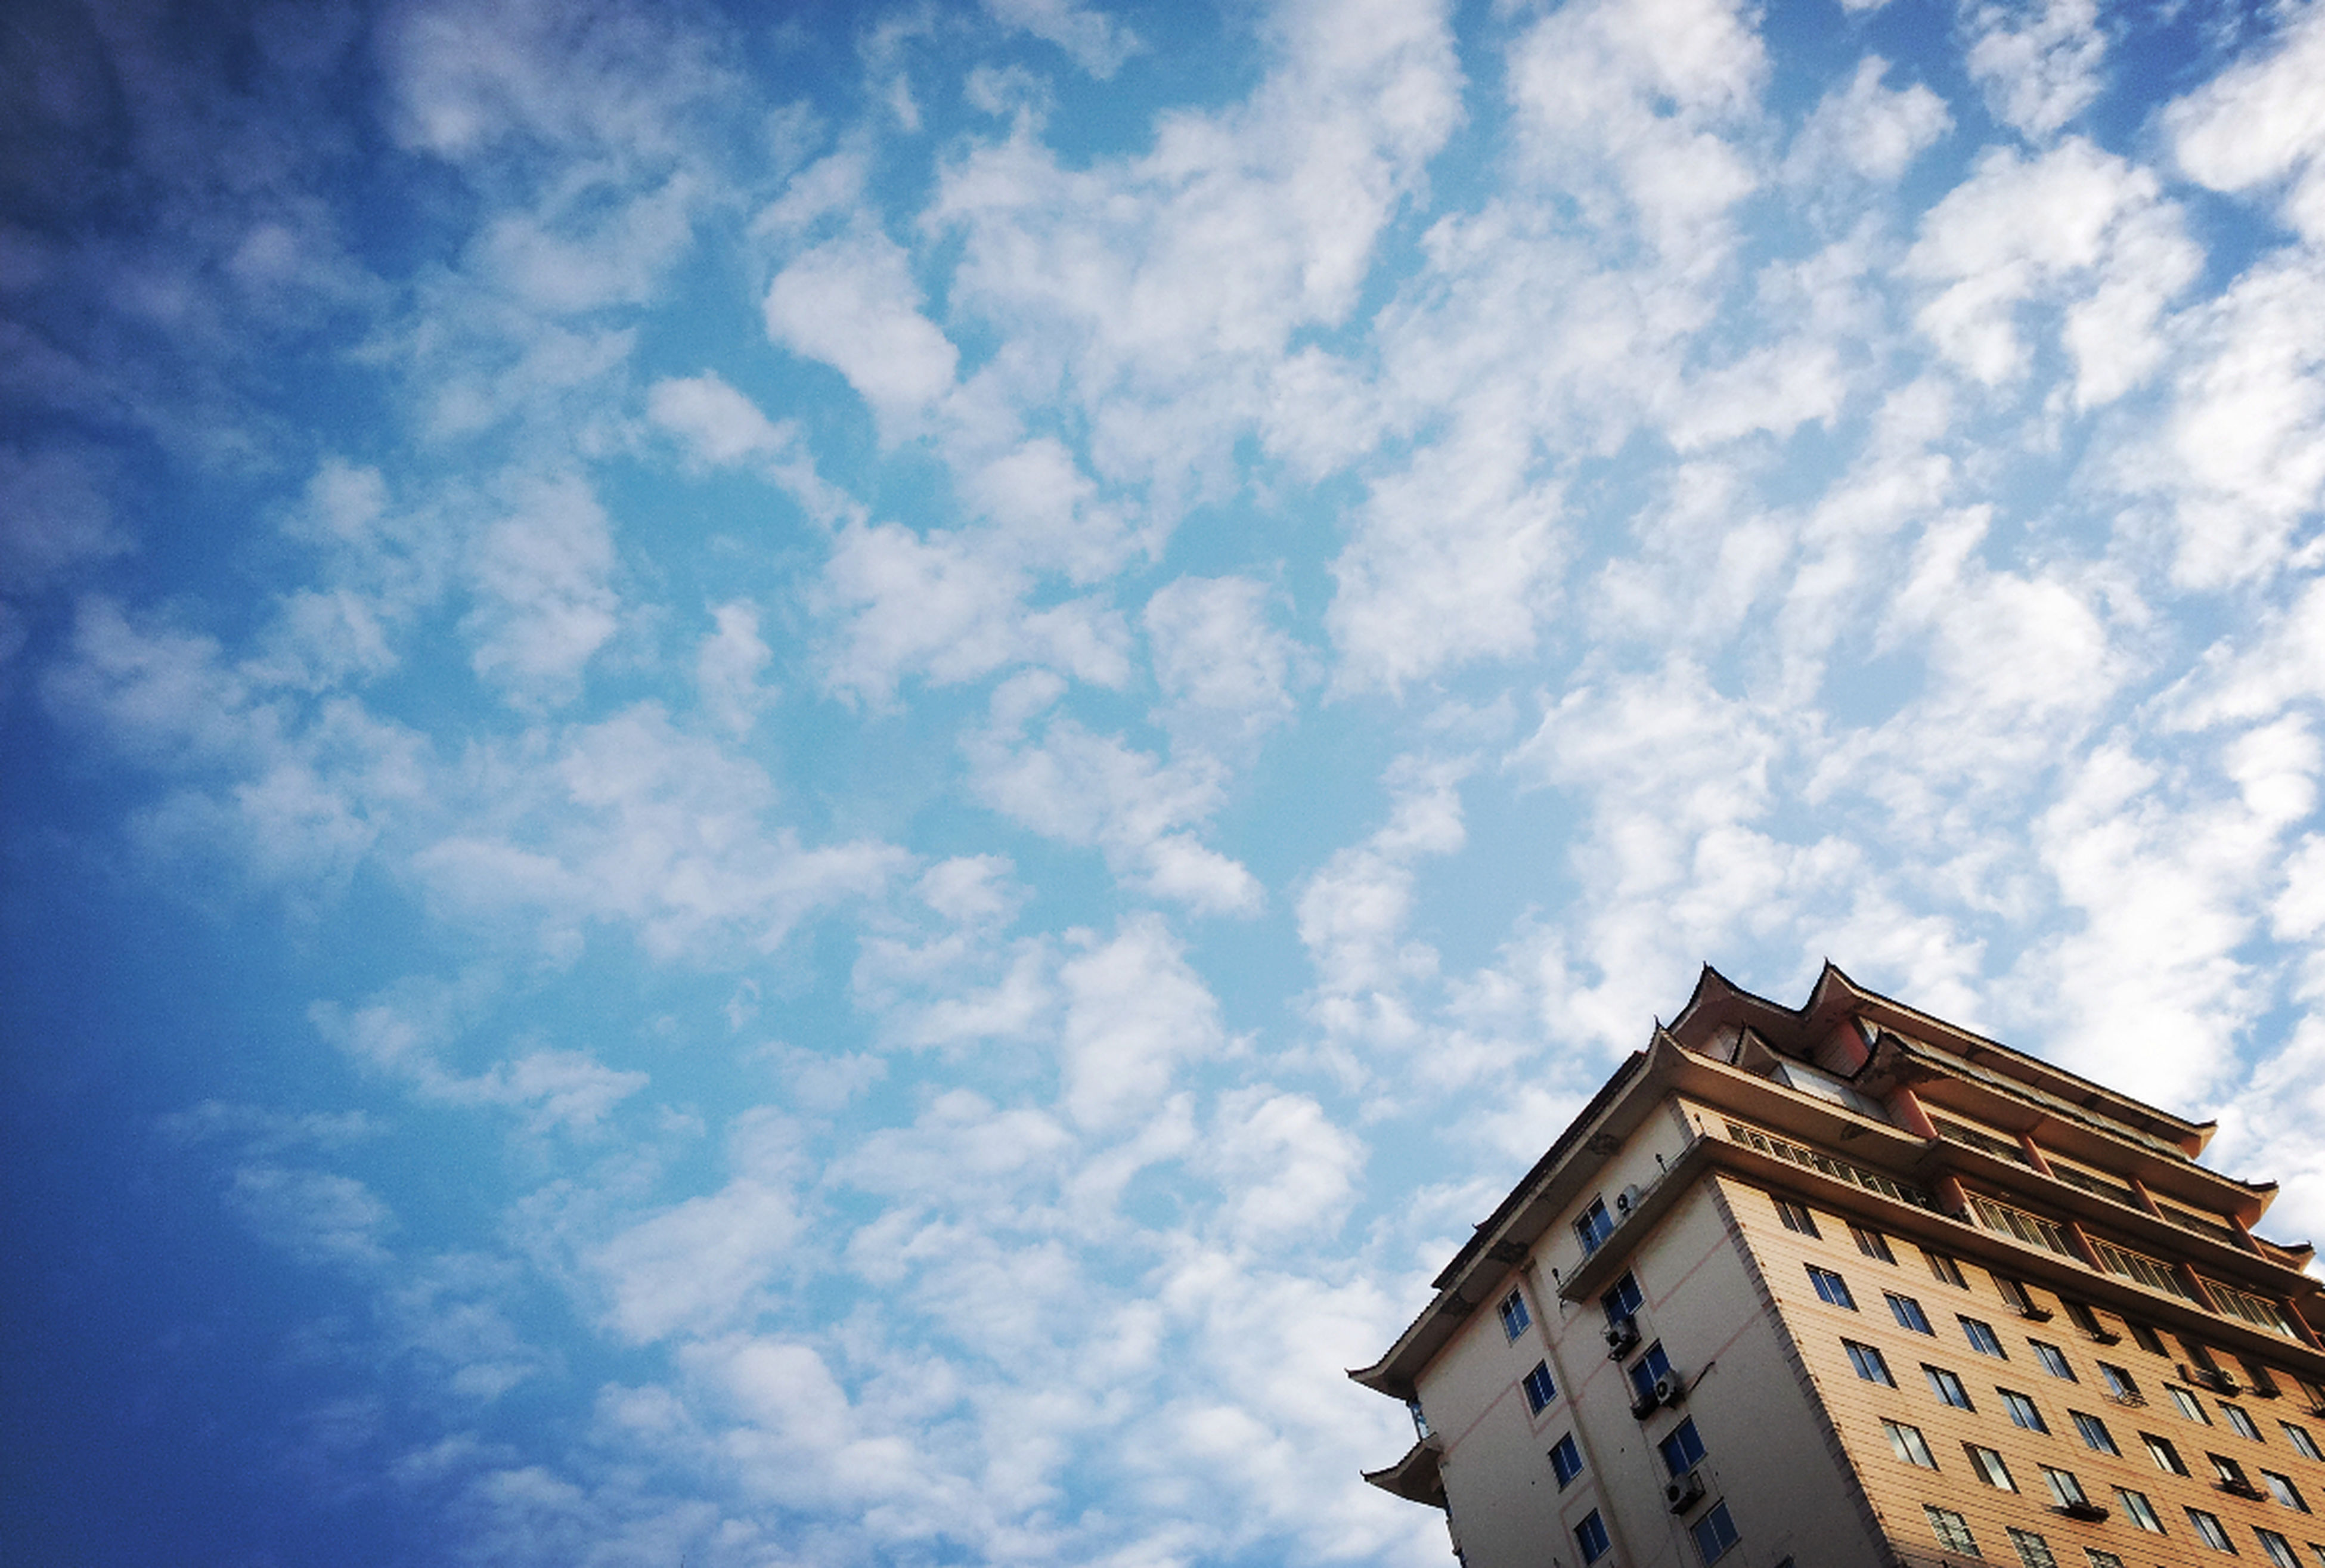 low angle view, architecture, building exterior, built structure, sky, cloud - sky, cloud, blue, cloudy, building, high section, day, outdoors, city, no people, residential building, residential structure, nature, directly below, window